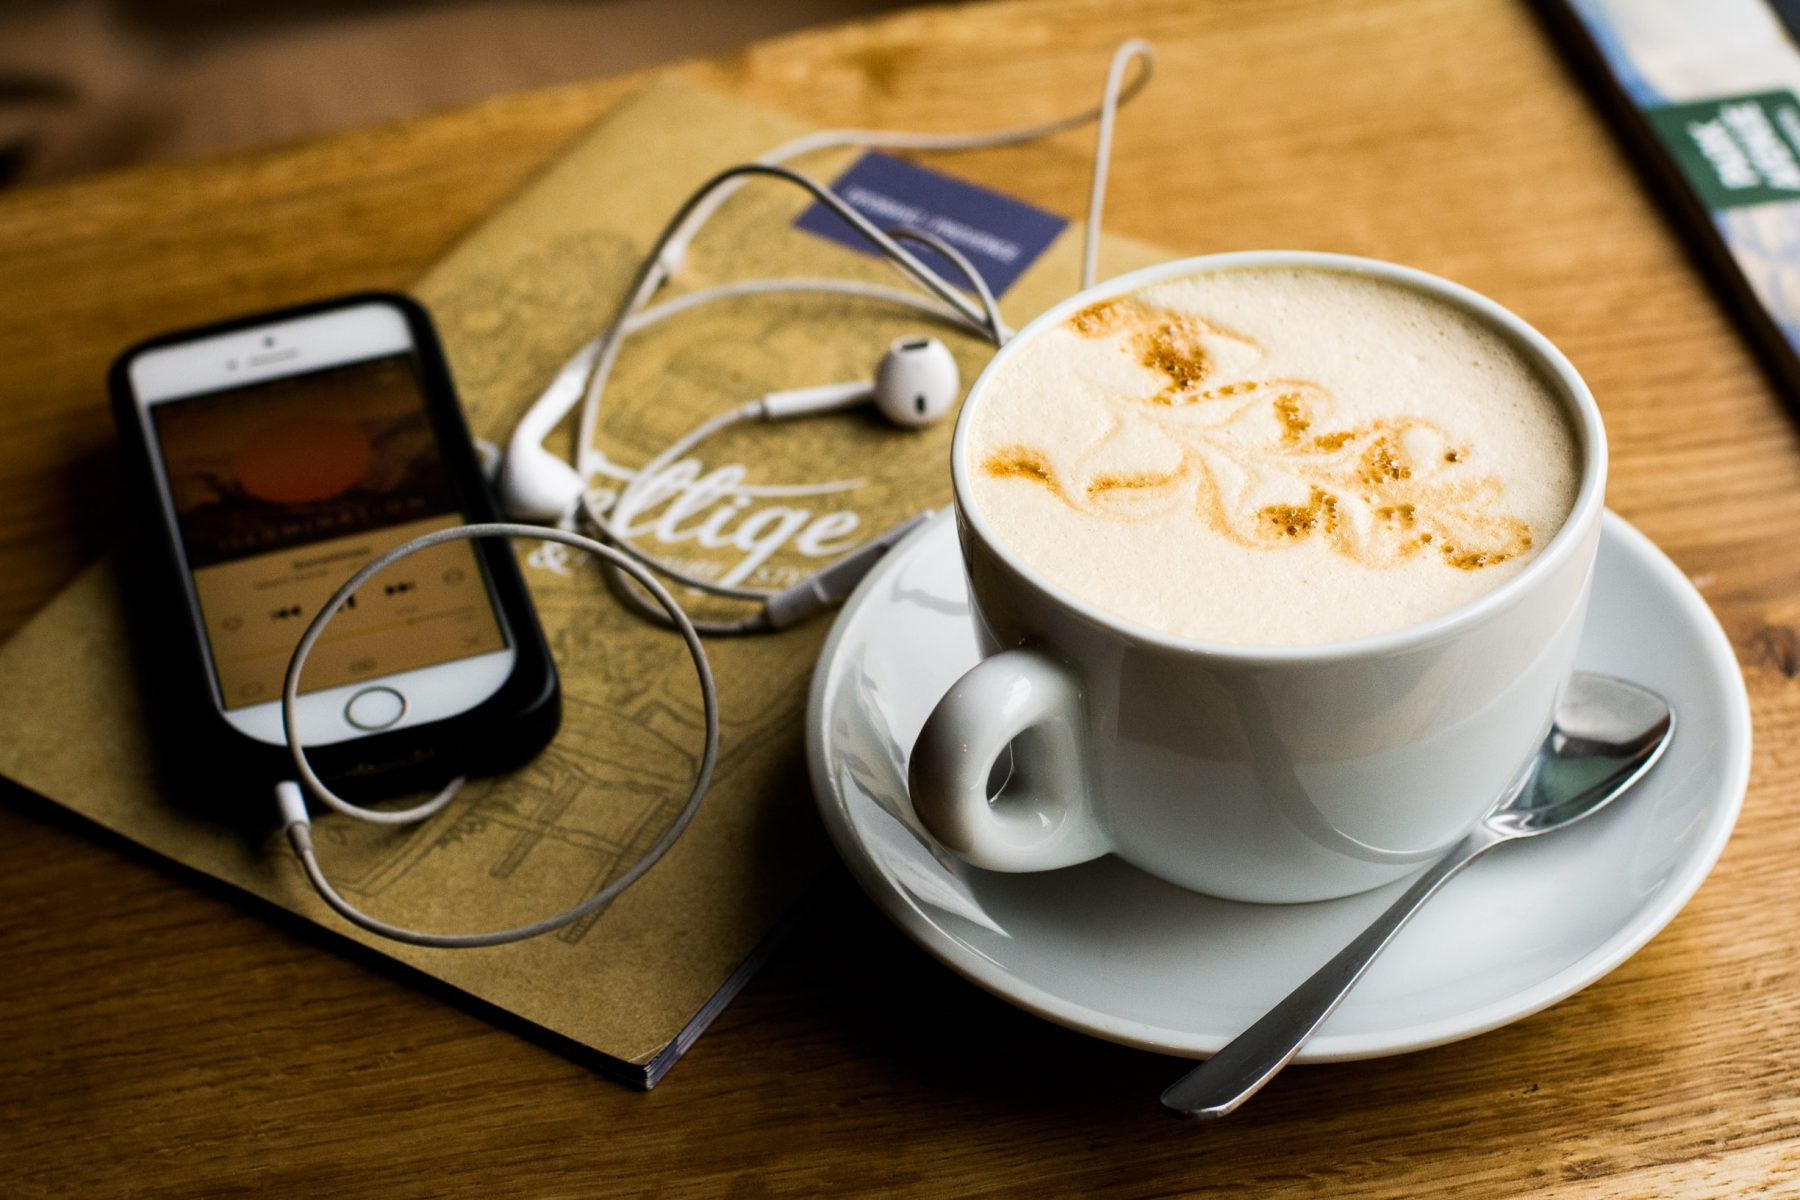 In an article about book review podcasts, a cup of coffee next to a phone with a podcast playing